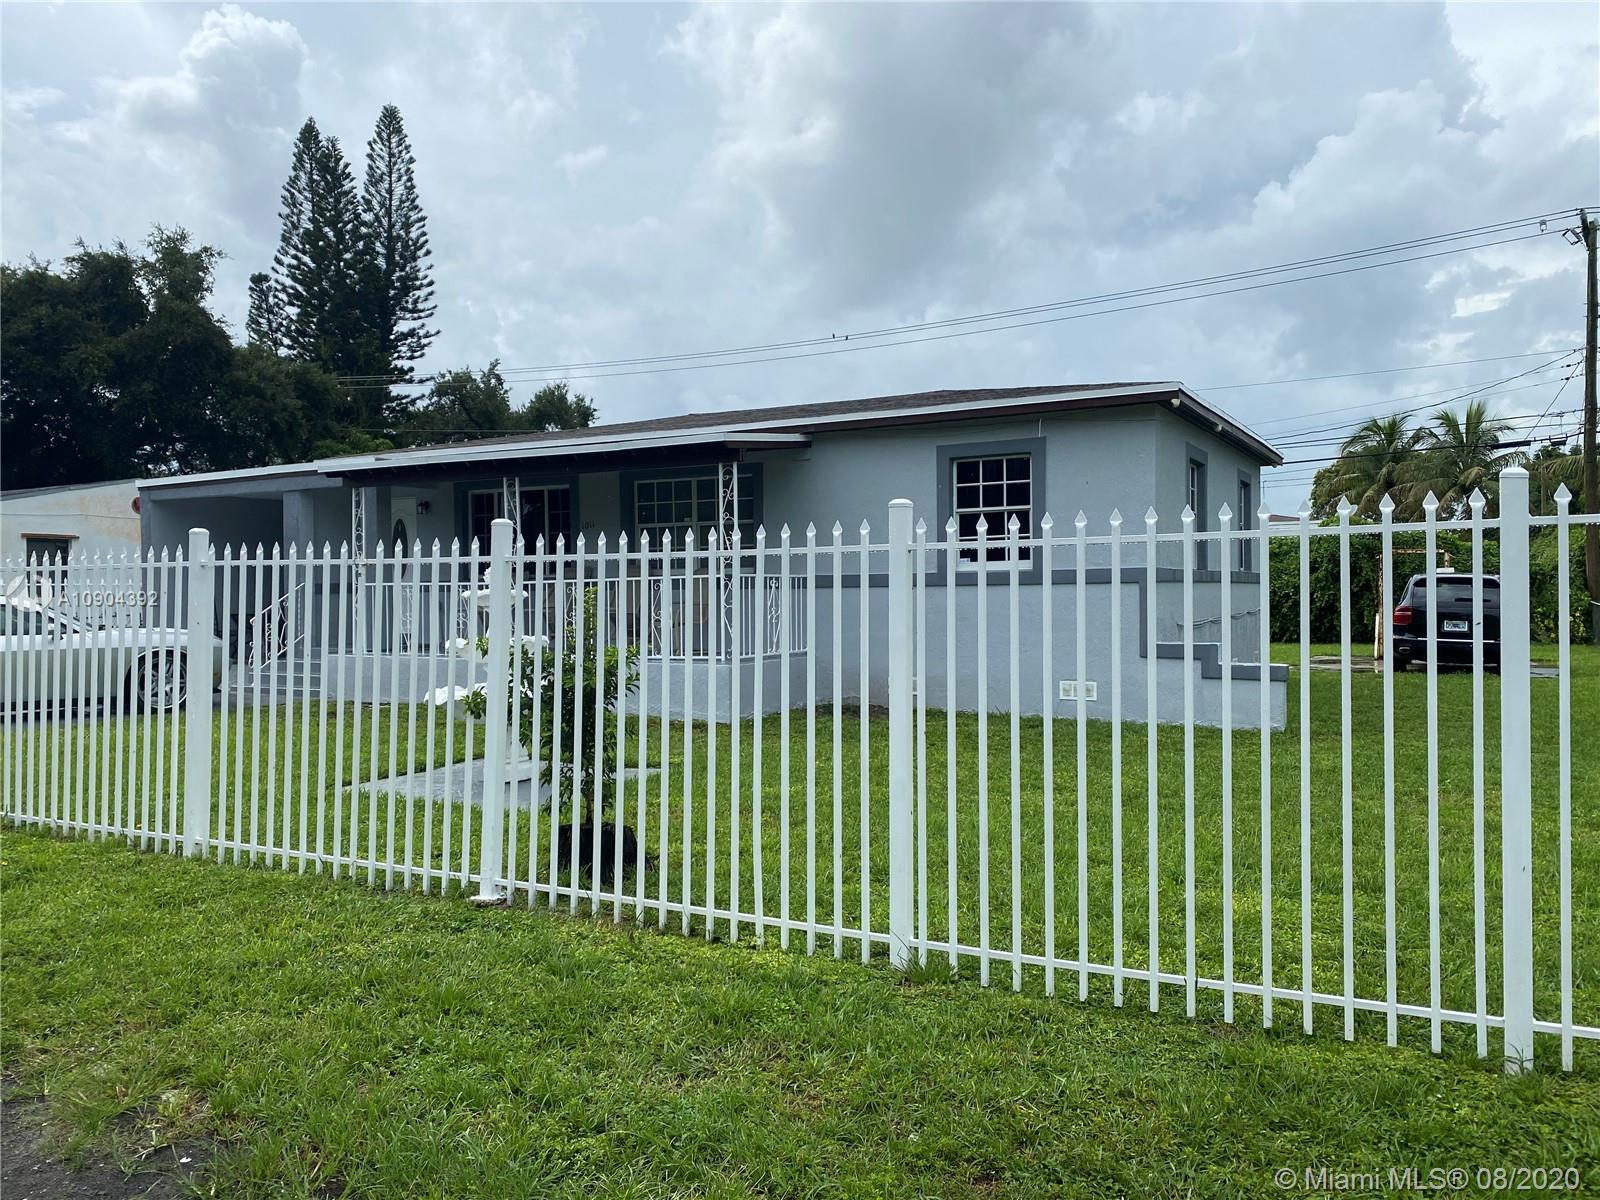 Wonderful property located in Biscayne Gardens. Currently rented month to month. Updated home with secured fence makes this home a great deal.